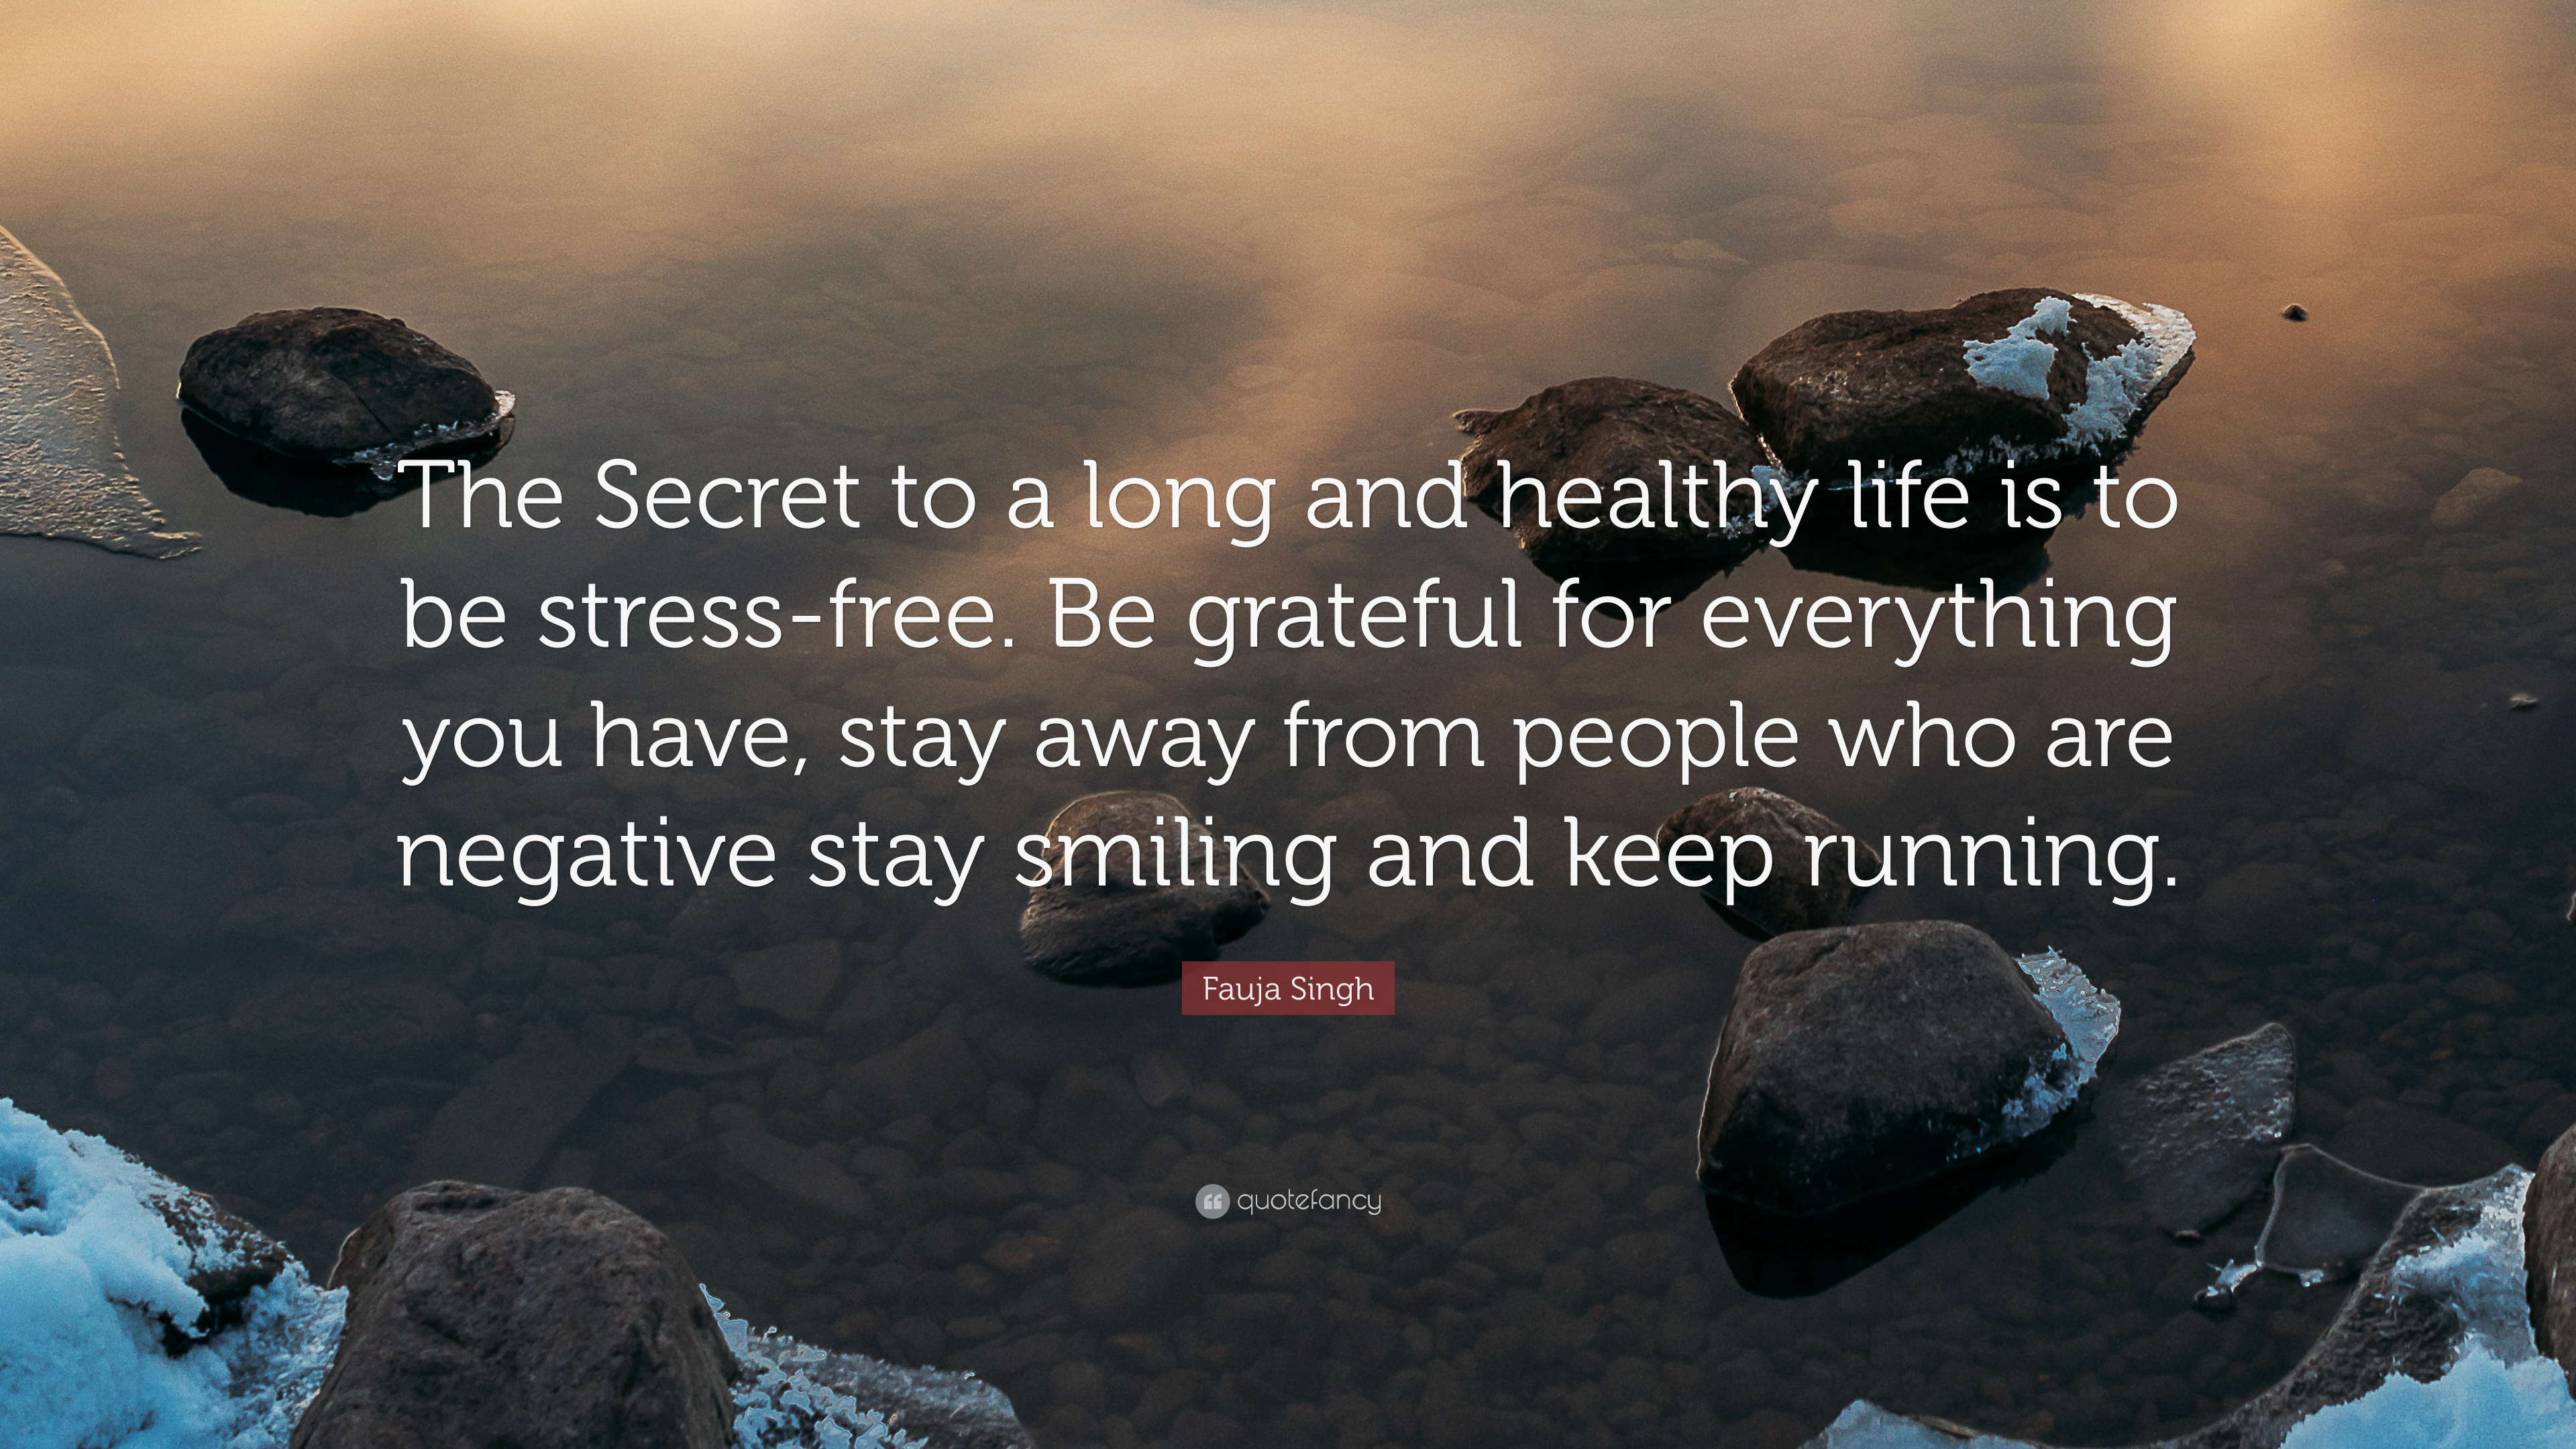 Fauja Singh Quote The Secret To A Long And Healthy Life Is To Be Stress Free Be Grateful For Everything You Have Stay Away From People W 7 Wallpapers Quotefancy